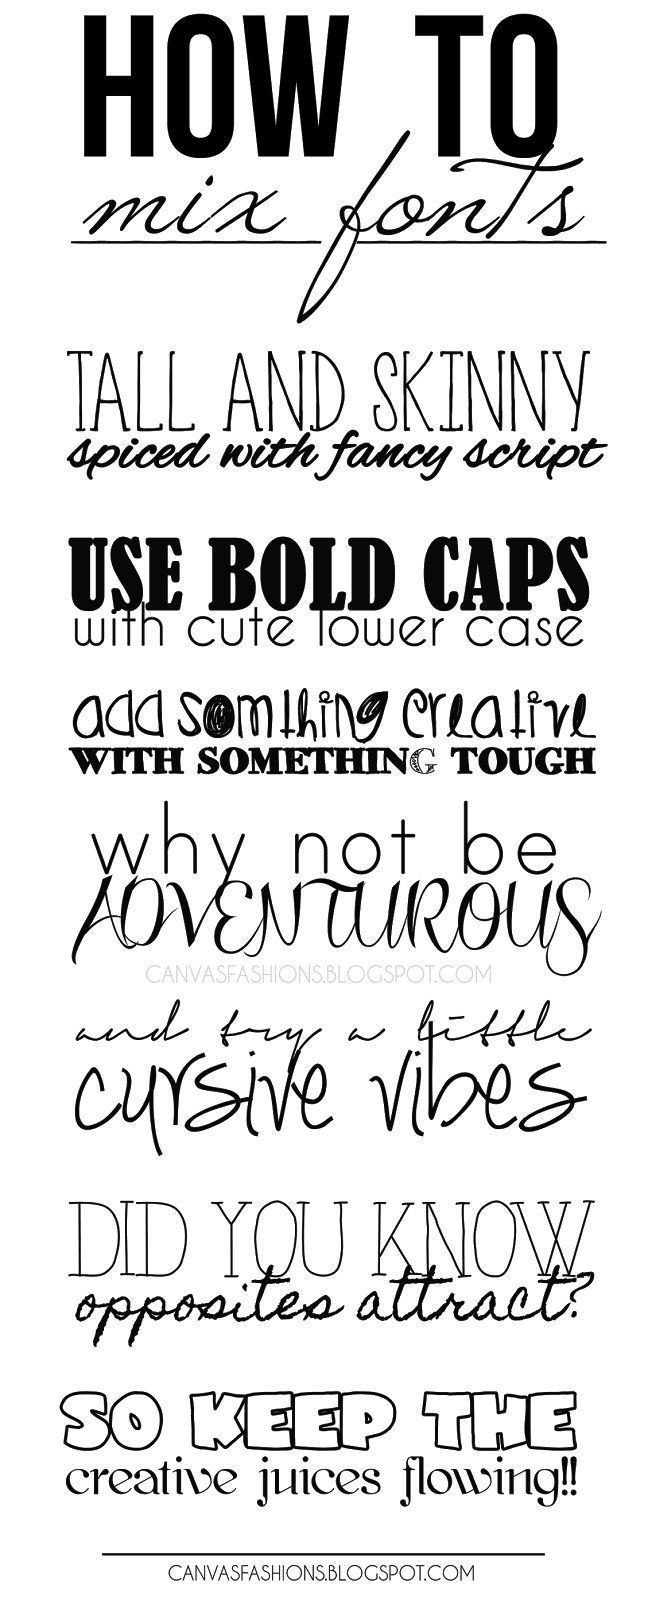 TIP TUESDAY | HOW TO MIX FONTS + FREE DOWNLOADABLE LINKS | Simônè Slater | LinkedIn  Source by mercedesm